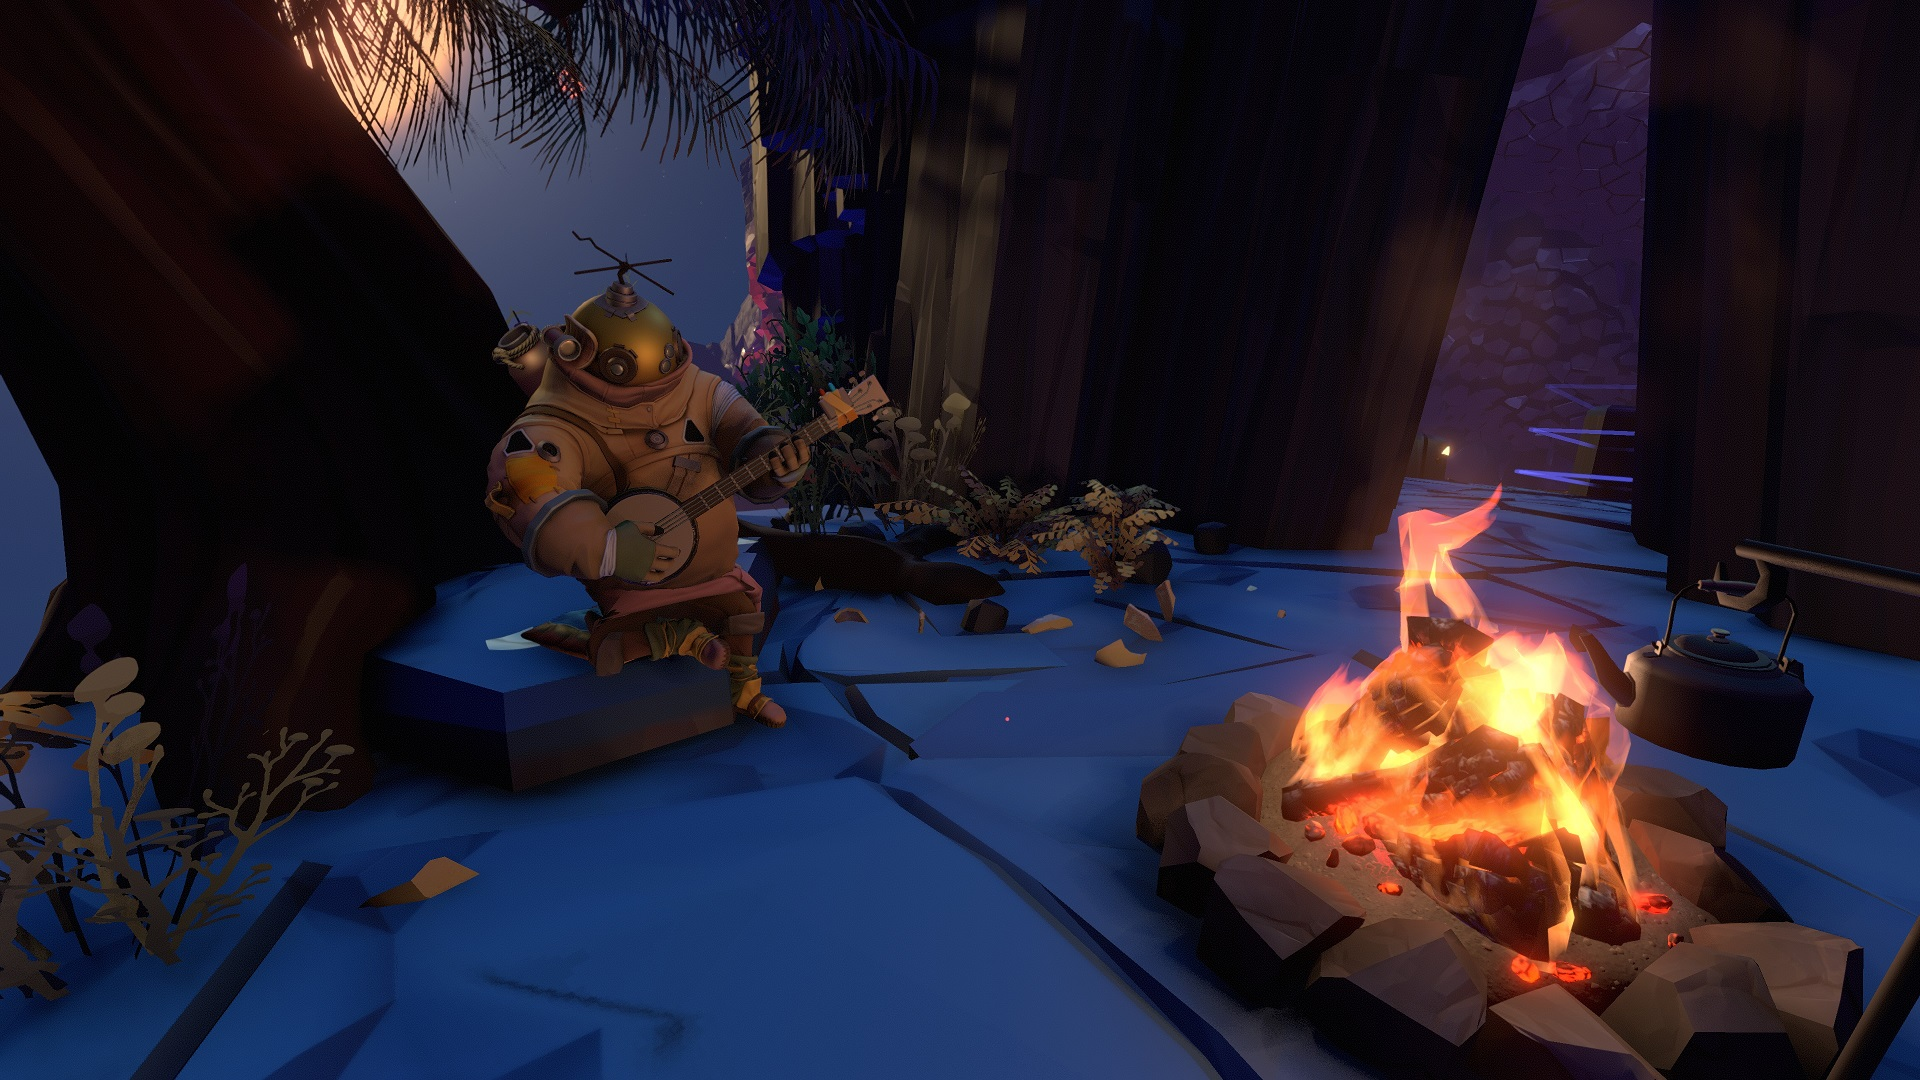 PlayStation 4 players get to explore the Outer Wilds next week screenshot